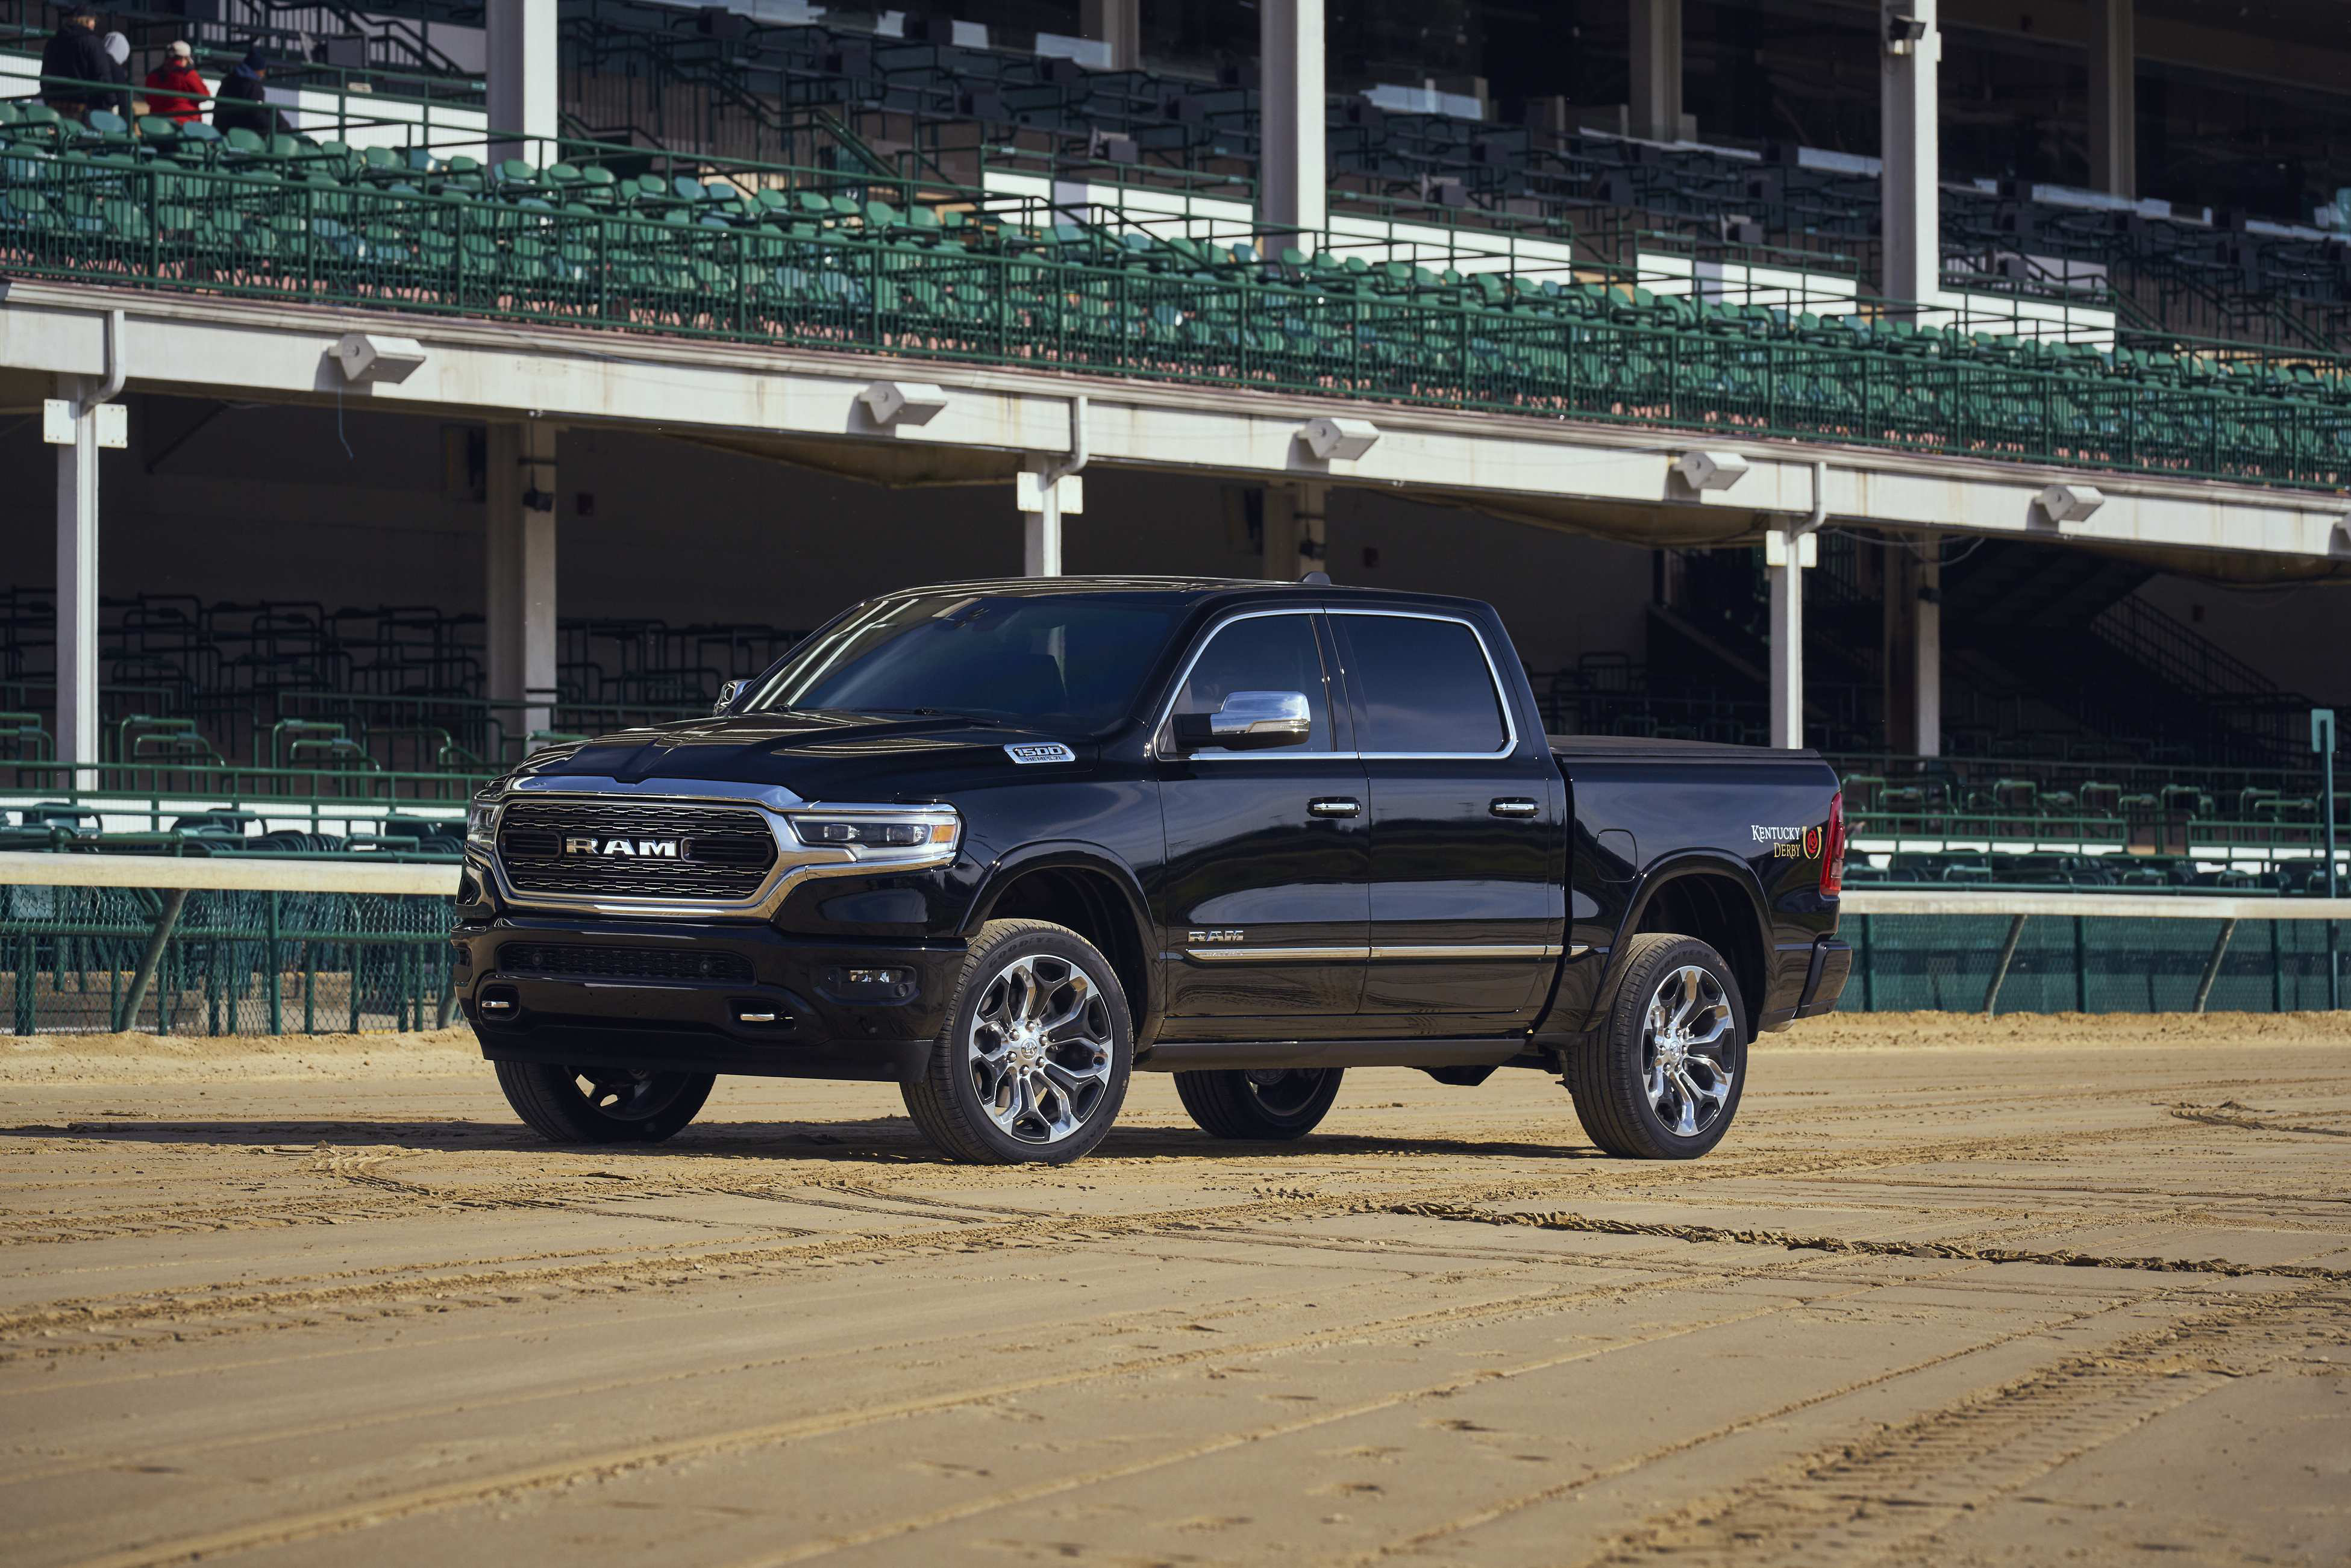 Ram Unveiled Today A Limited Edition Of Its All New 2019 1500 To Commemorate The 144th Running Kentucky Derby